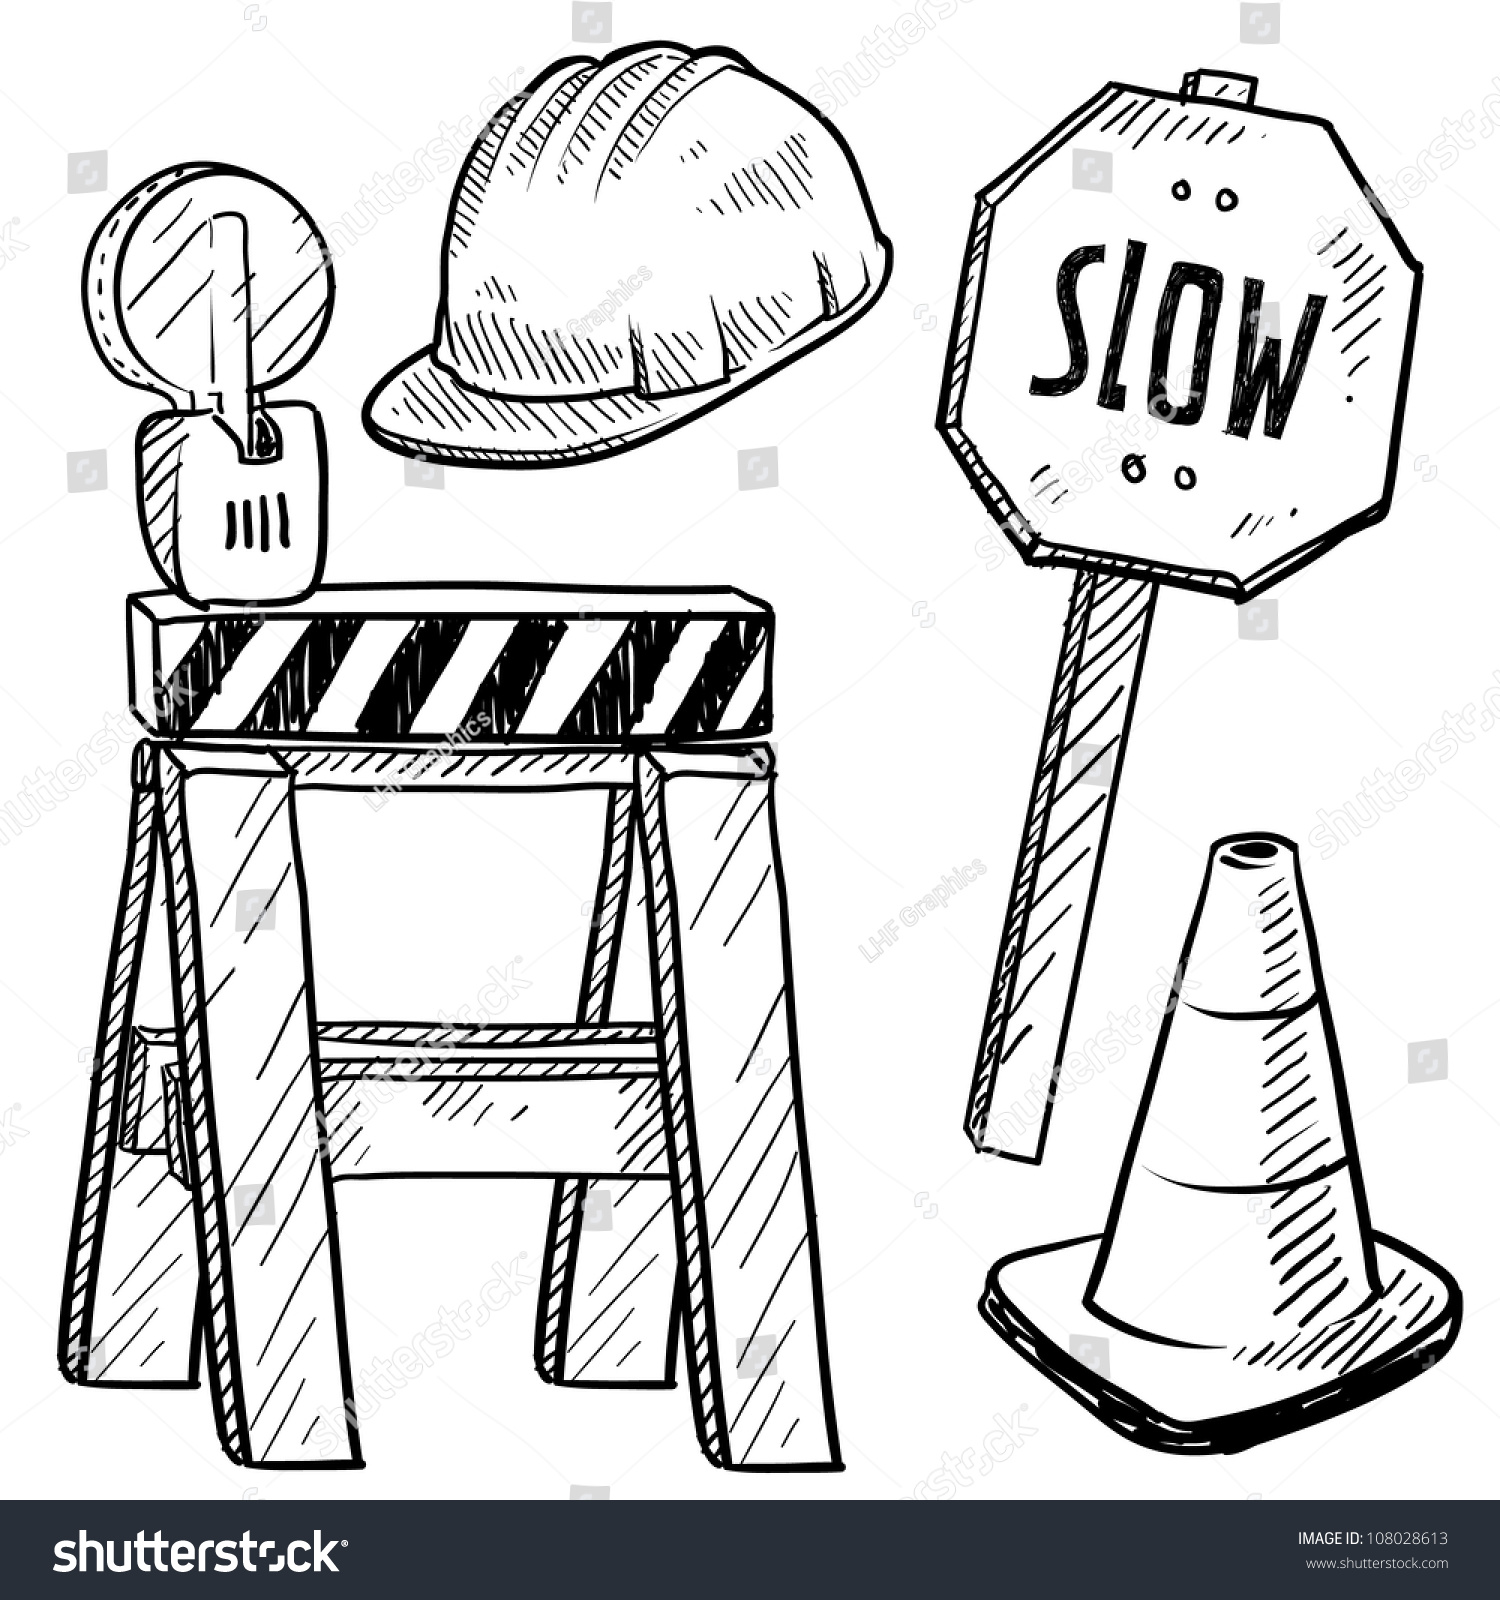 Doodle Style Road Construction Equipment Sketch Stock Vector